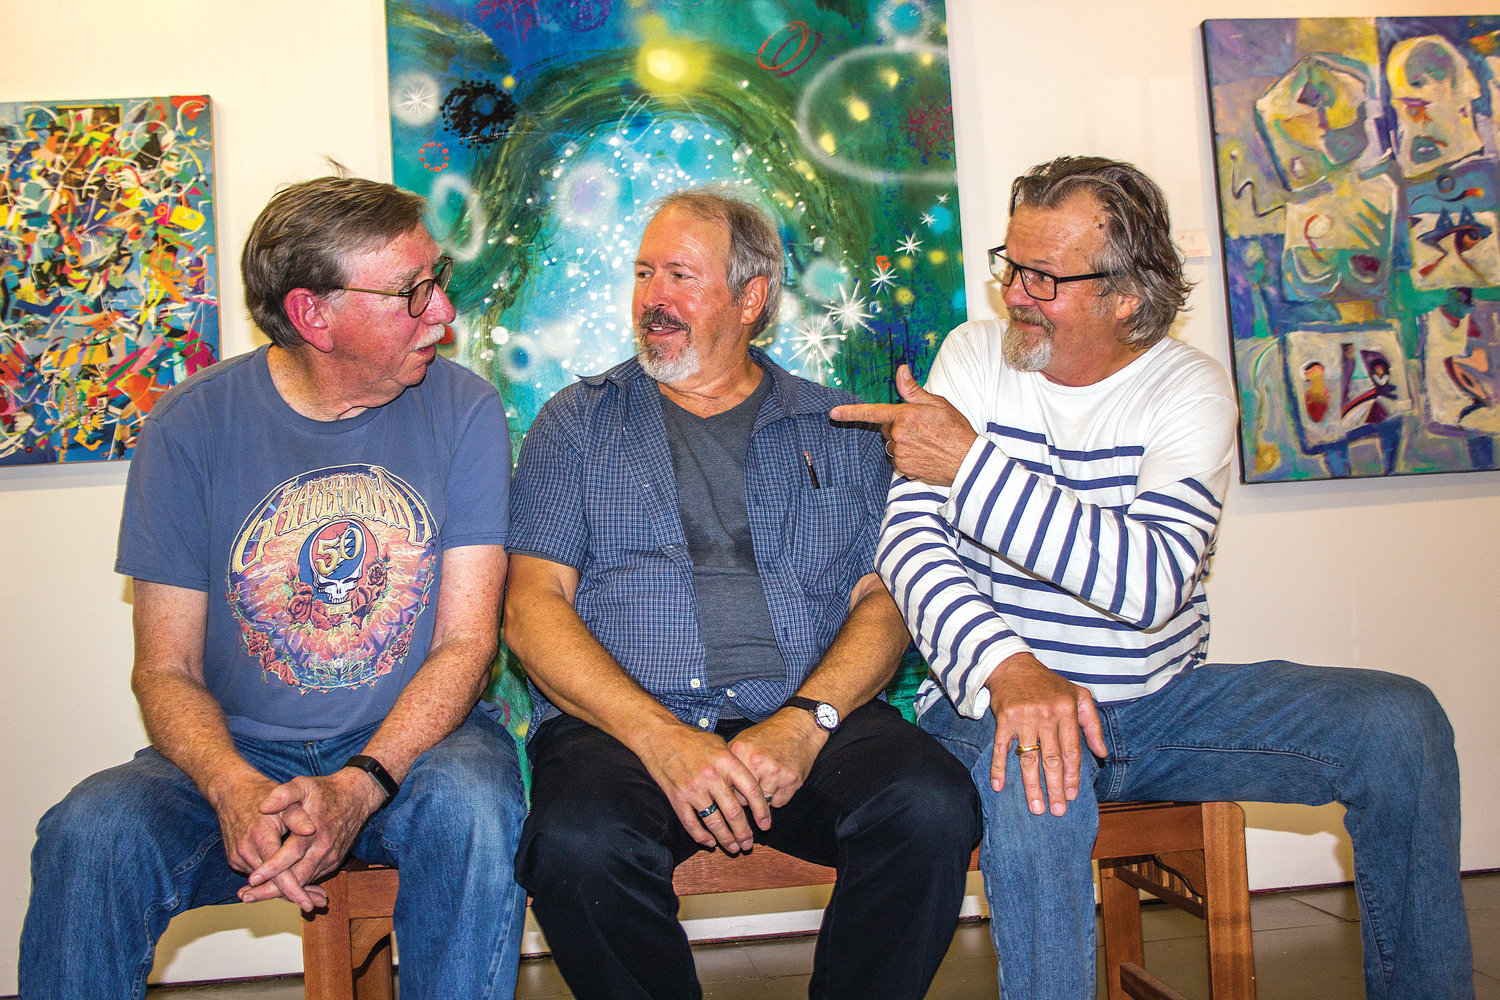 Stephen Yates, center, has been chosen as the 2019 Angel of the Arts recipient. He will be showing off a selection of his painting with fellow artists Harold Nelson, left, and Peter Juvonen at the art gallery at the Old Alcohol Plant.